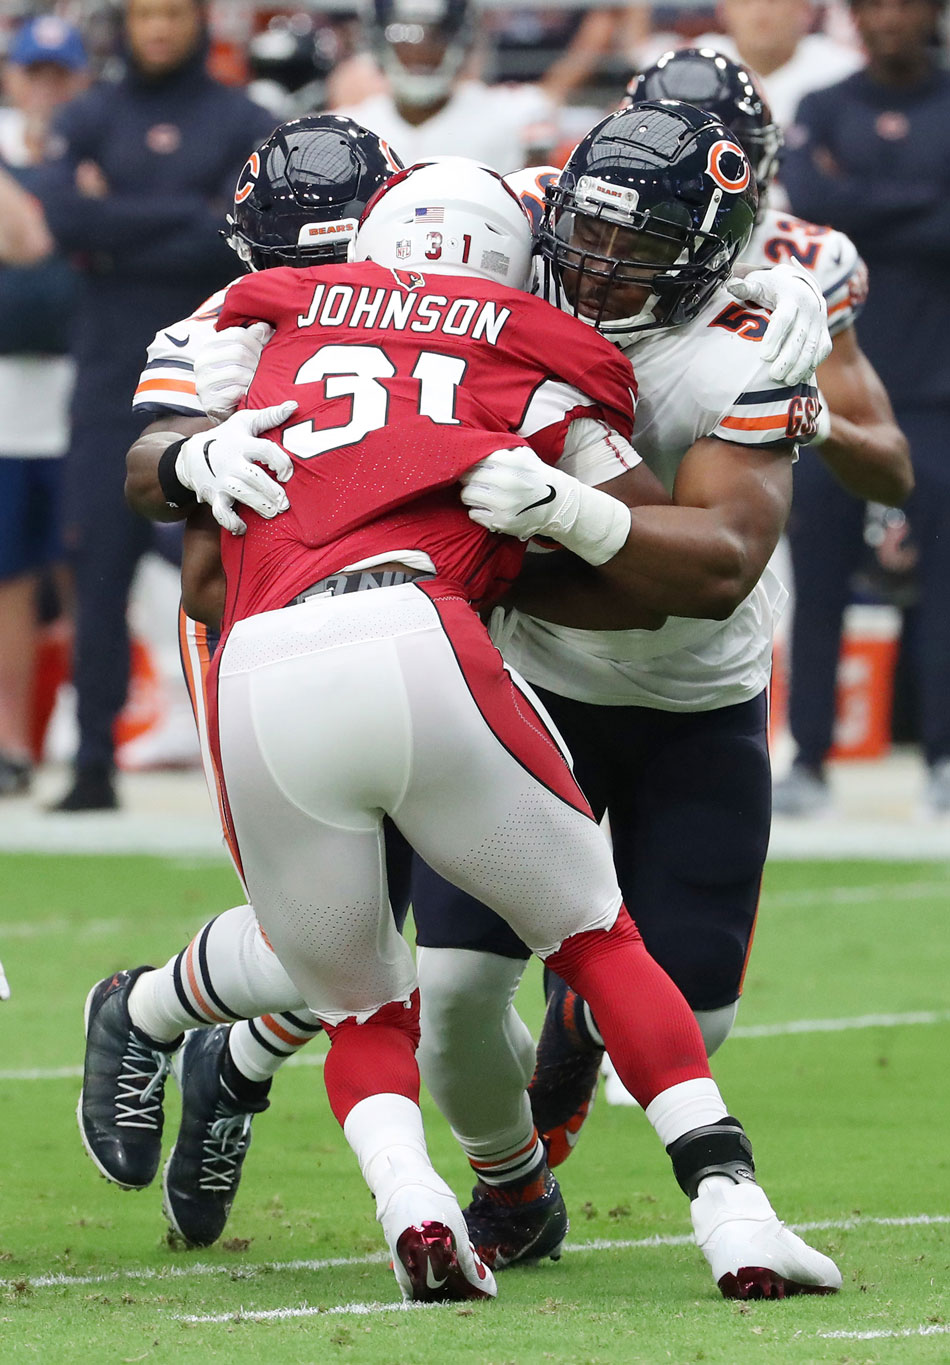 Chicago Bears linebackers Khalil Mack (52), right, and Danny Trevathan (59) tackle Arizona Cardinals running back David Johnson (31) in the first quarter on September 23, 2018, at State Farm Stadium in Glendale, Ariz.